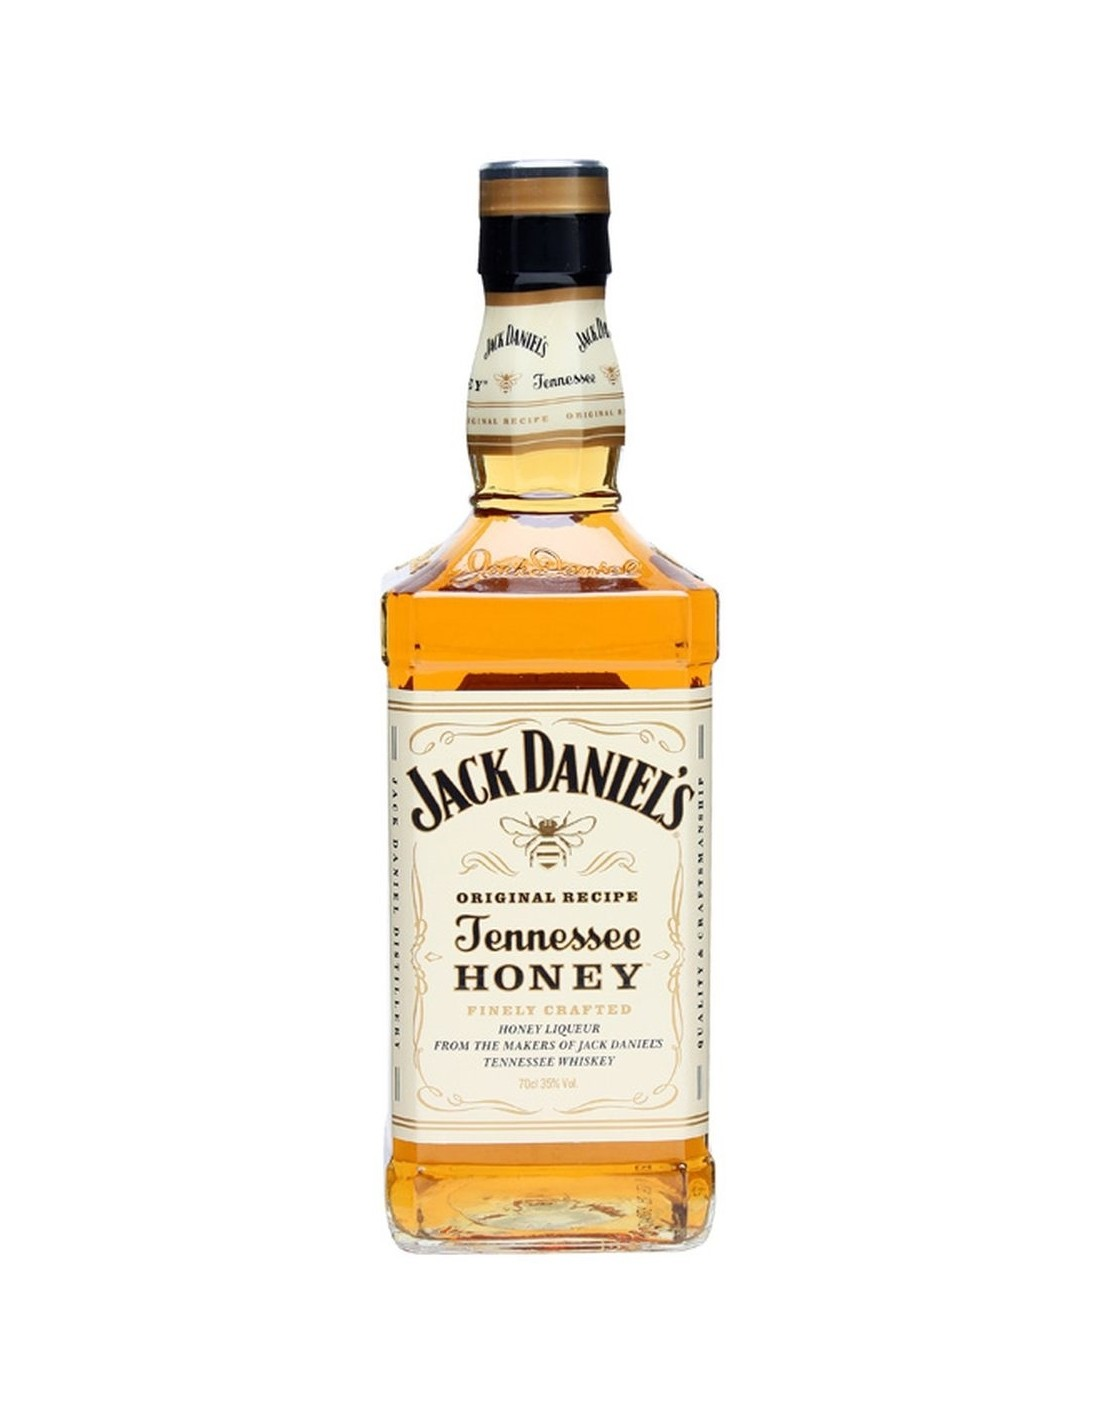 Whisky Jack Daniel's Honey, 35% alc., 0.7L, America